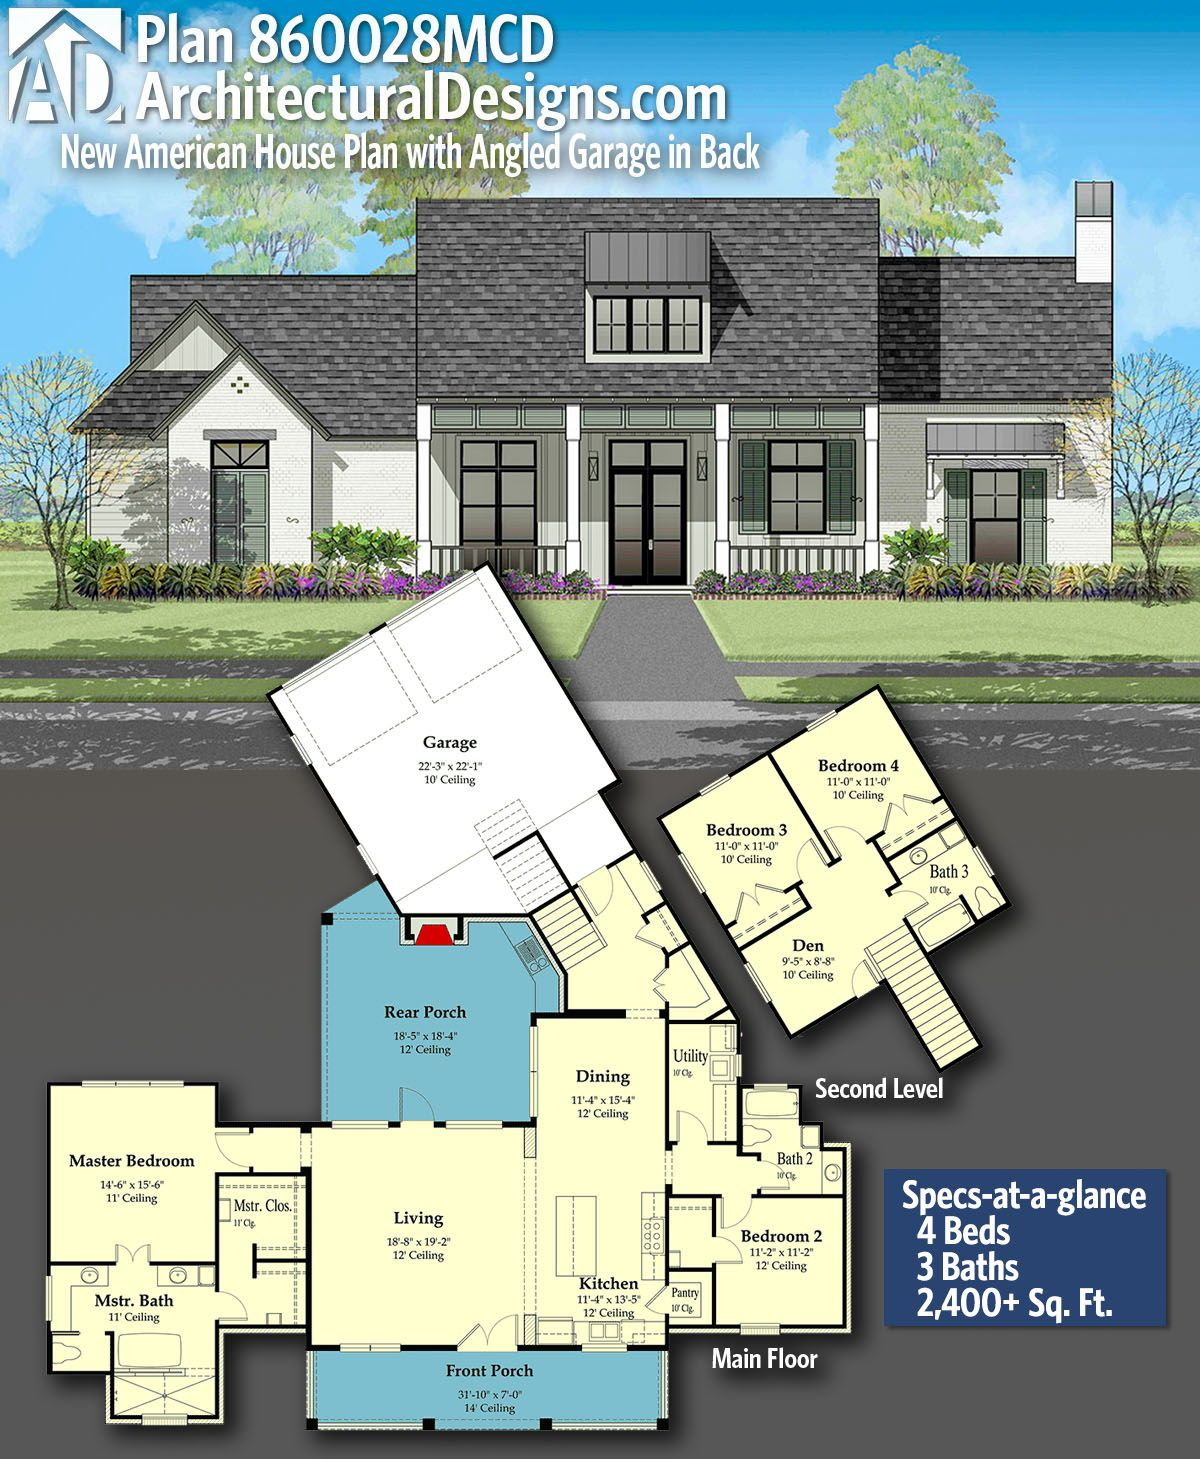 Architectural Designs New American House Plan 860028mcd Gives You 4 Bedrooms 3 Baths And 2 400 Sq Ft Ready W Garage House Plans American Houses House Plans